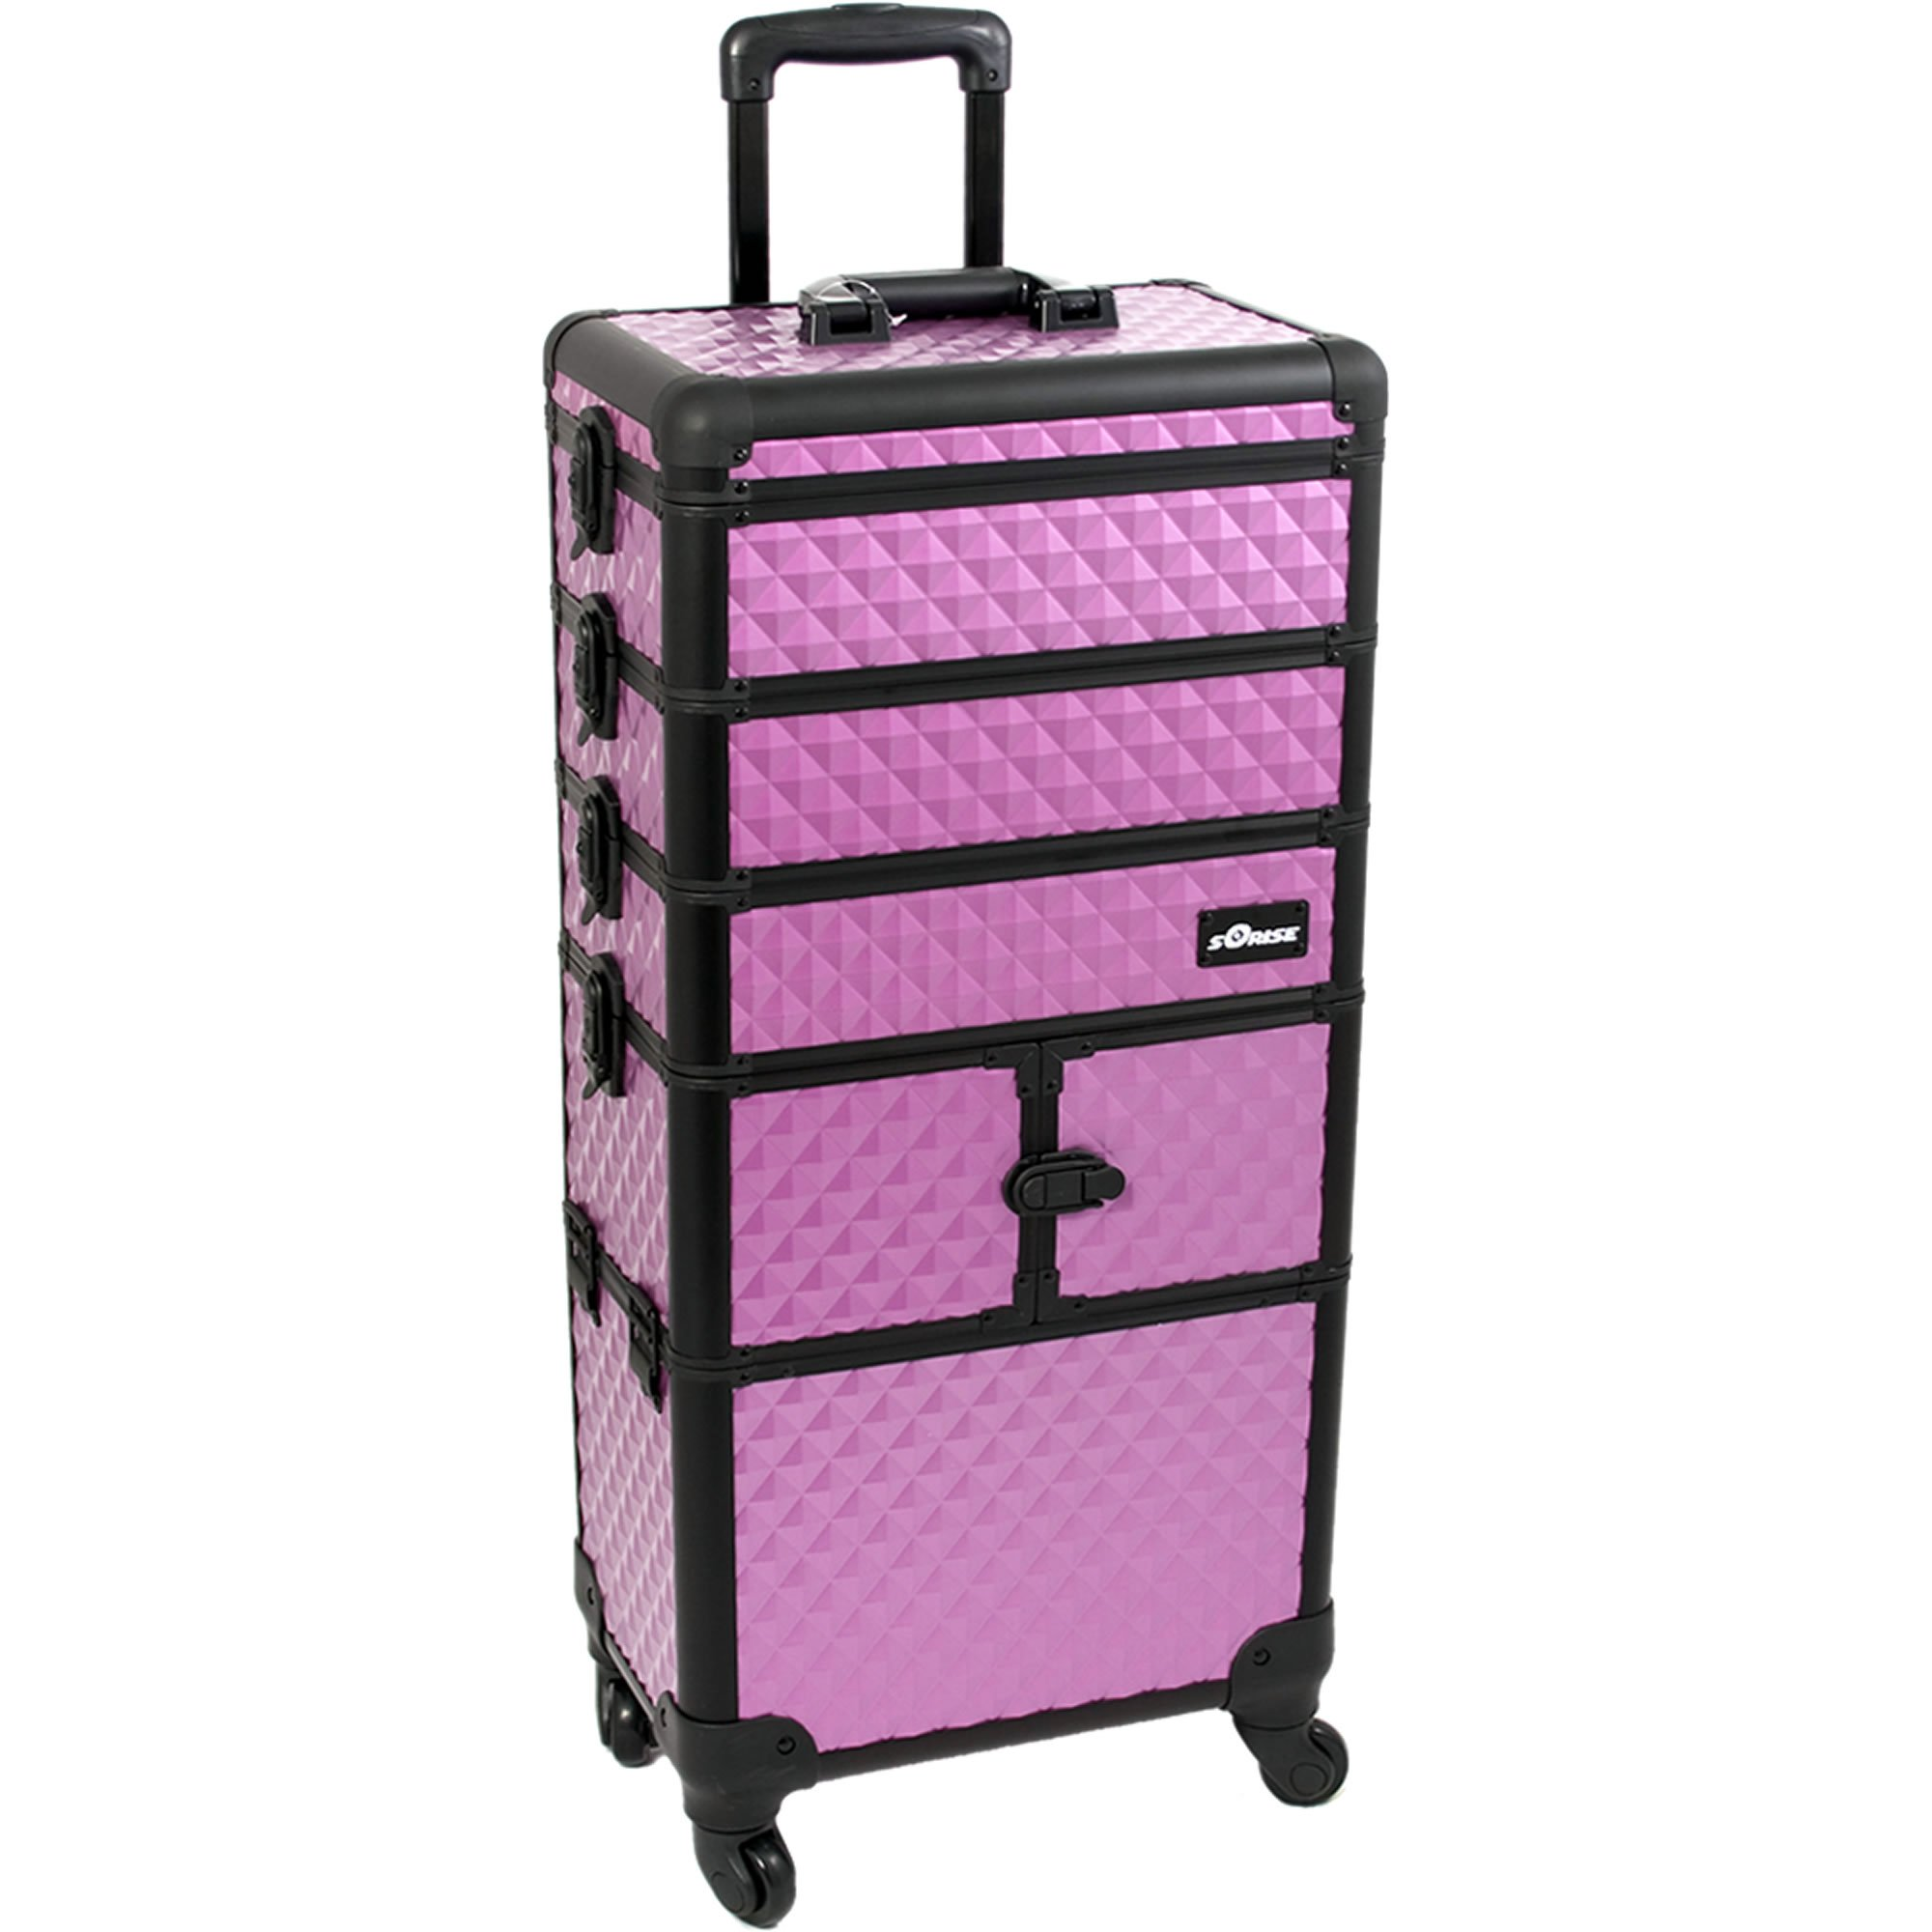 SUNRISE Makeup Rolling Case 4 in 1 Professional Organizer I3364 Aluminum, 3 Stackable Trays and Two 3 Tier Trays, 4 Wheel Spinner, Purple Diamond by SunRise